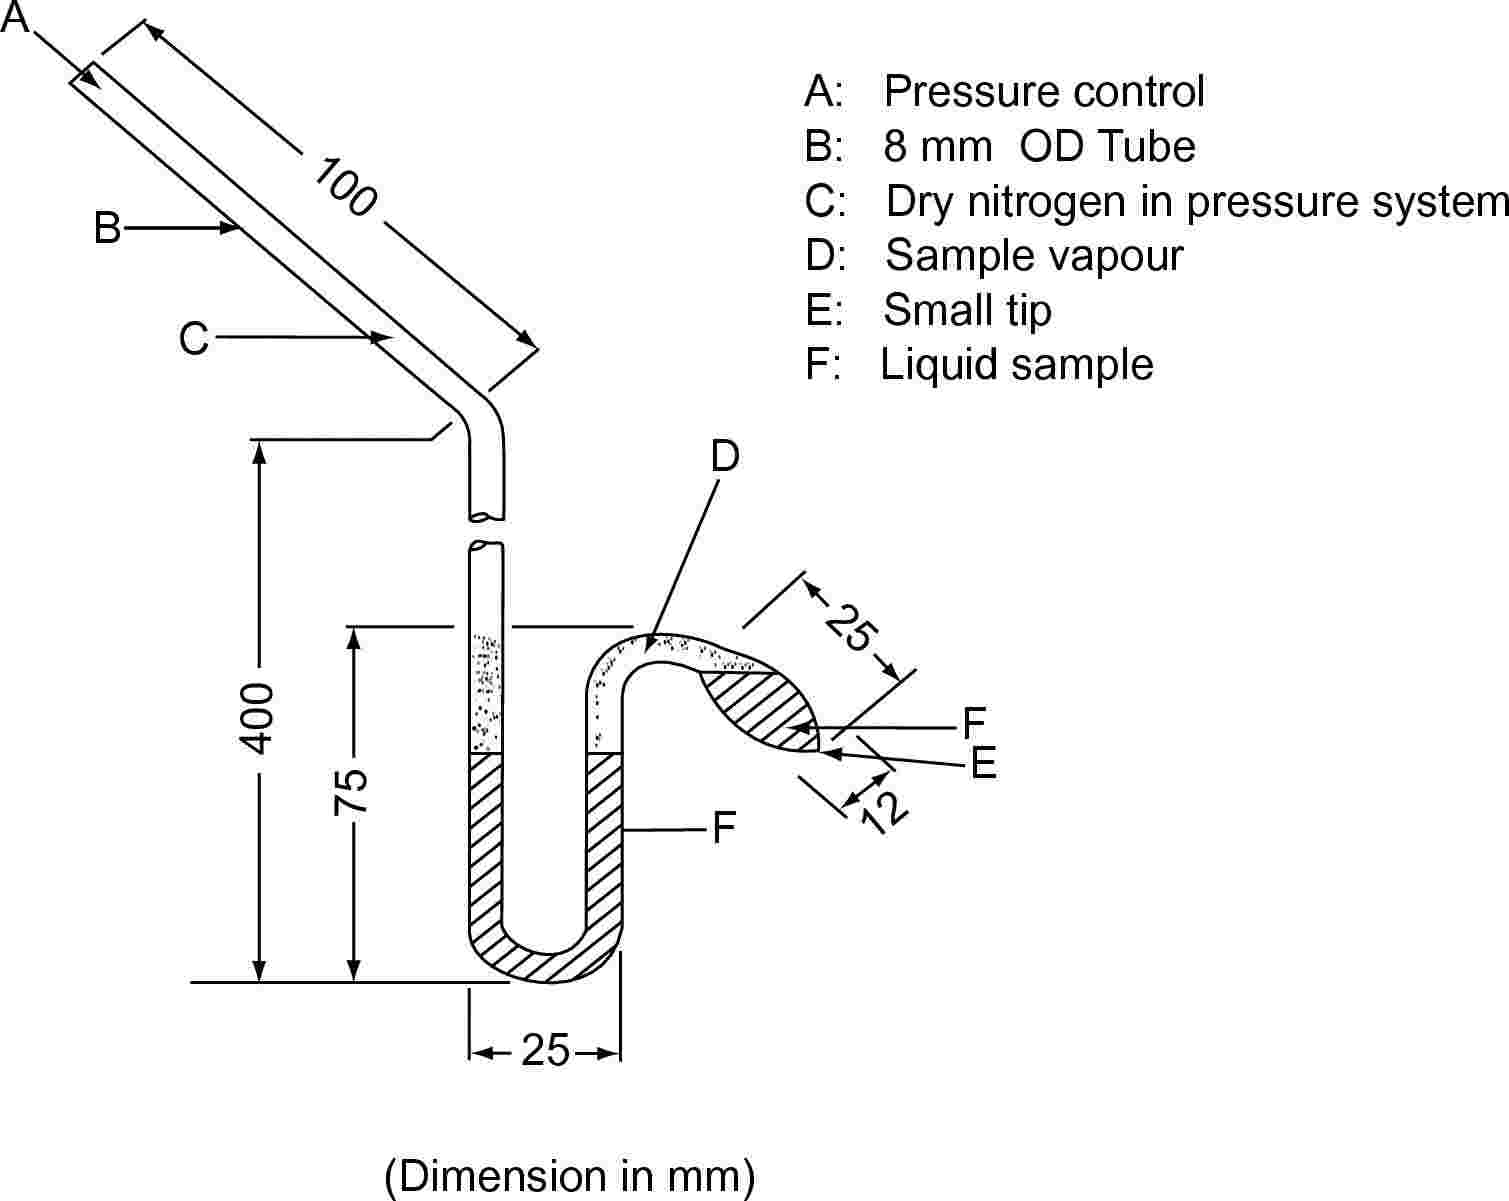 A: Pressure controlB: 8 mm OD TubeC: Dry nitrogen in pressure systemD: Sample vapourE: Small tipF: Liquid sample(Dimension in mm)